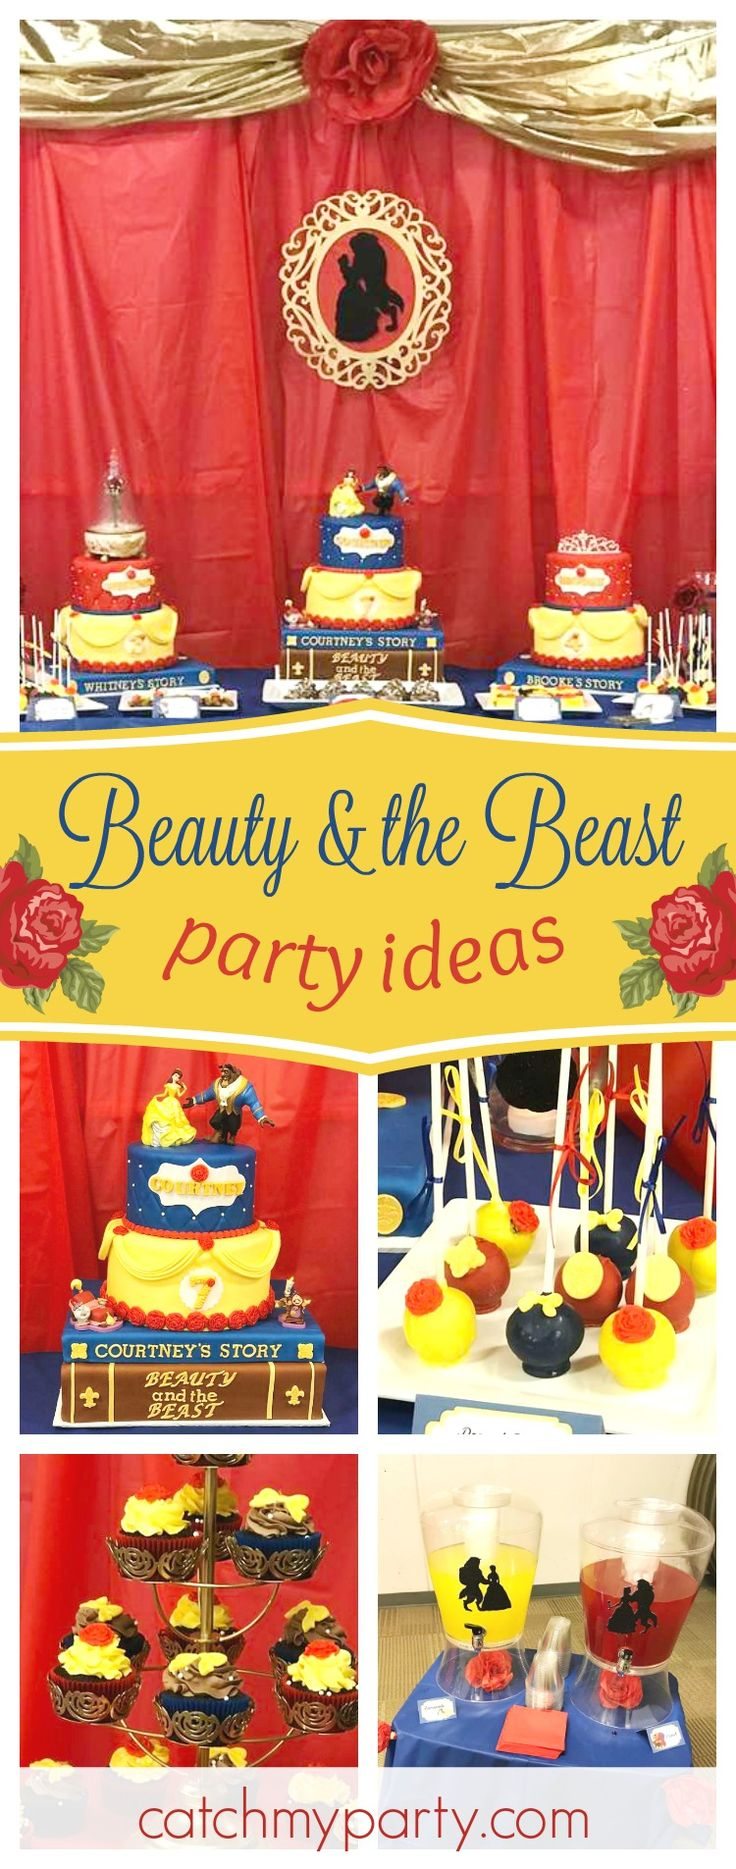 137 best Beauty and the Beast images on Pinterest | Birthdays ...